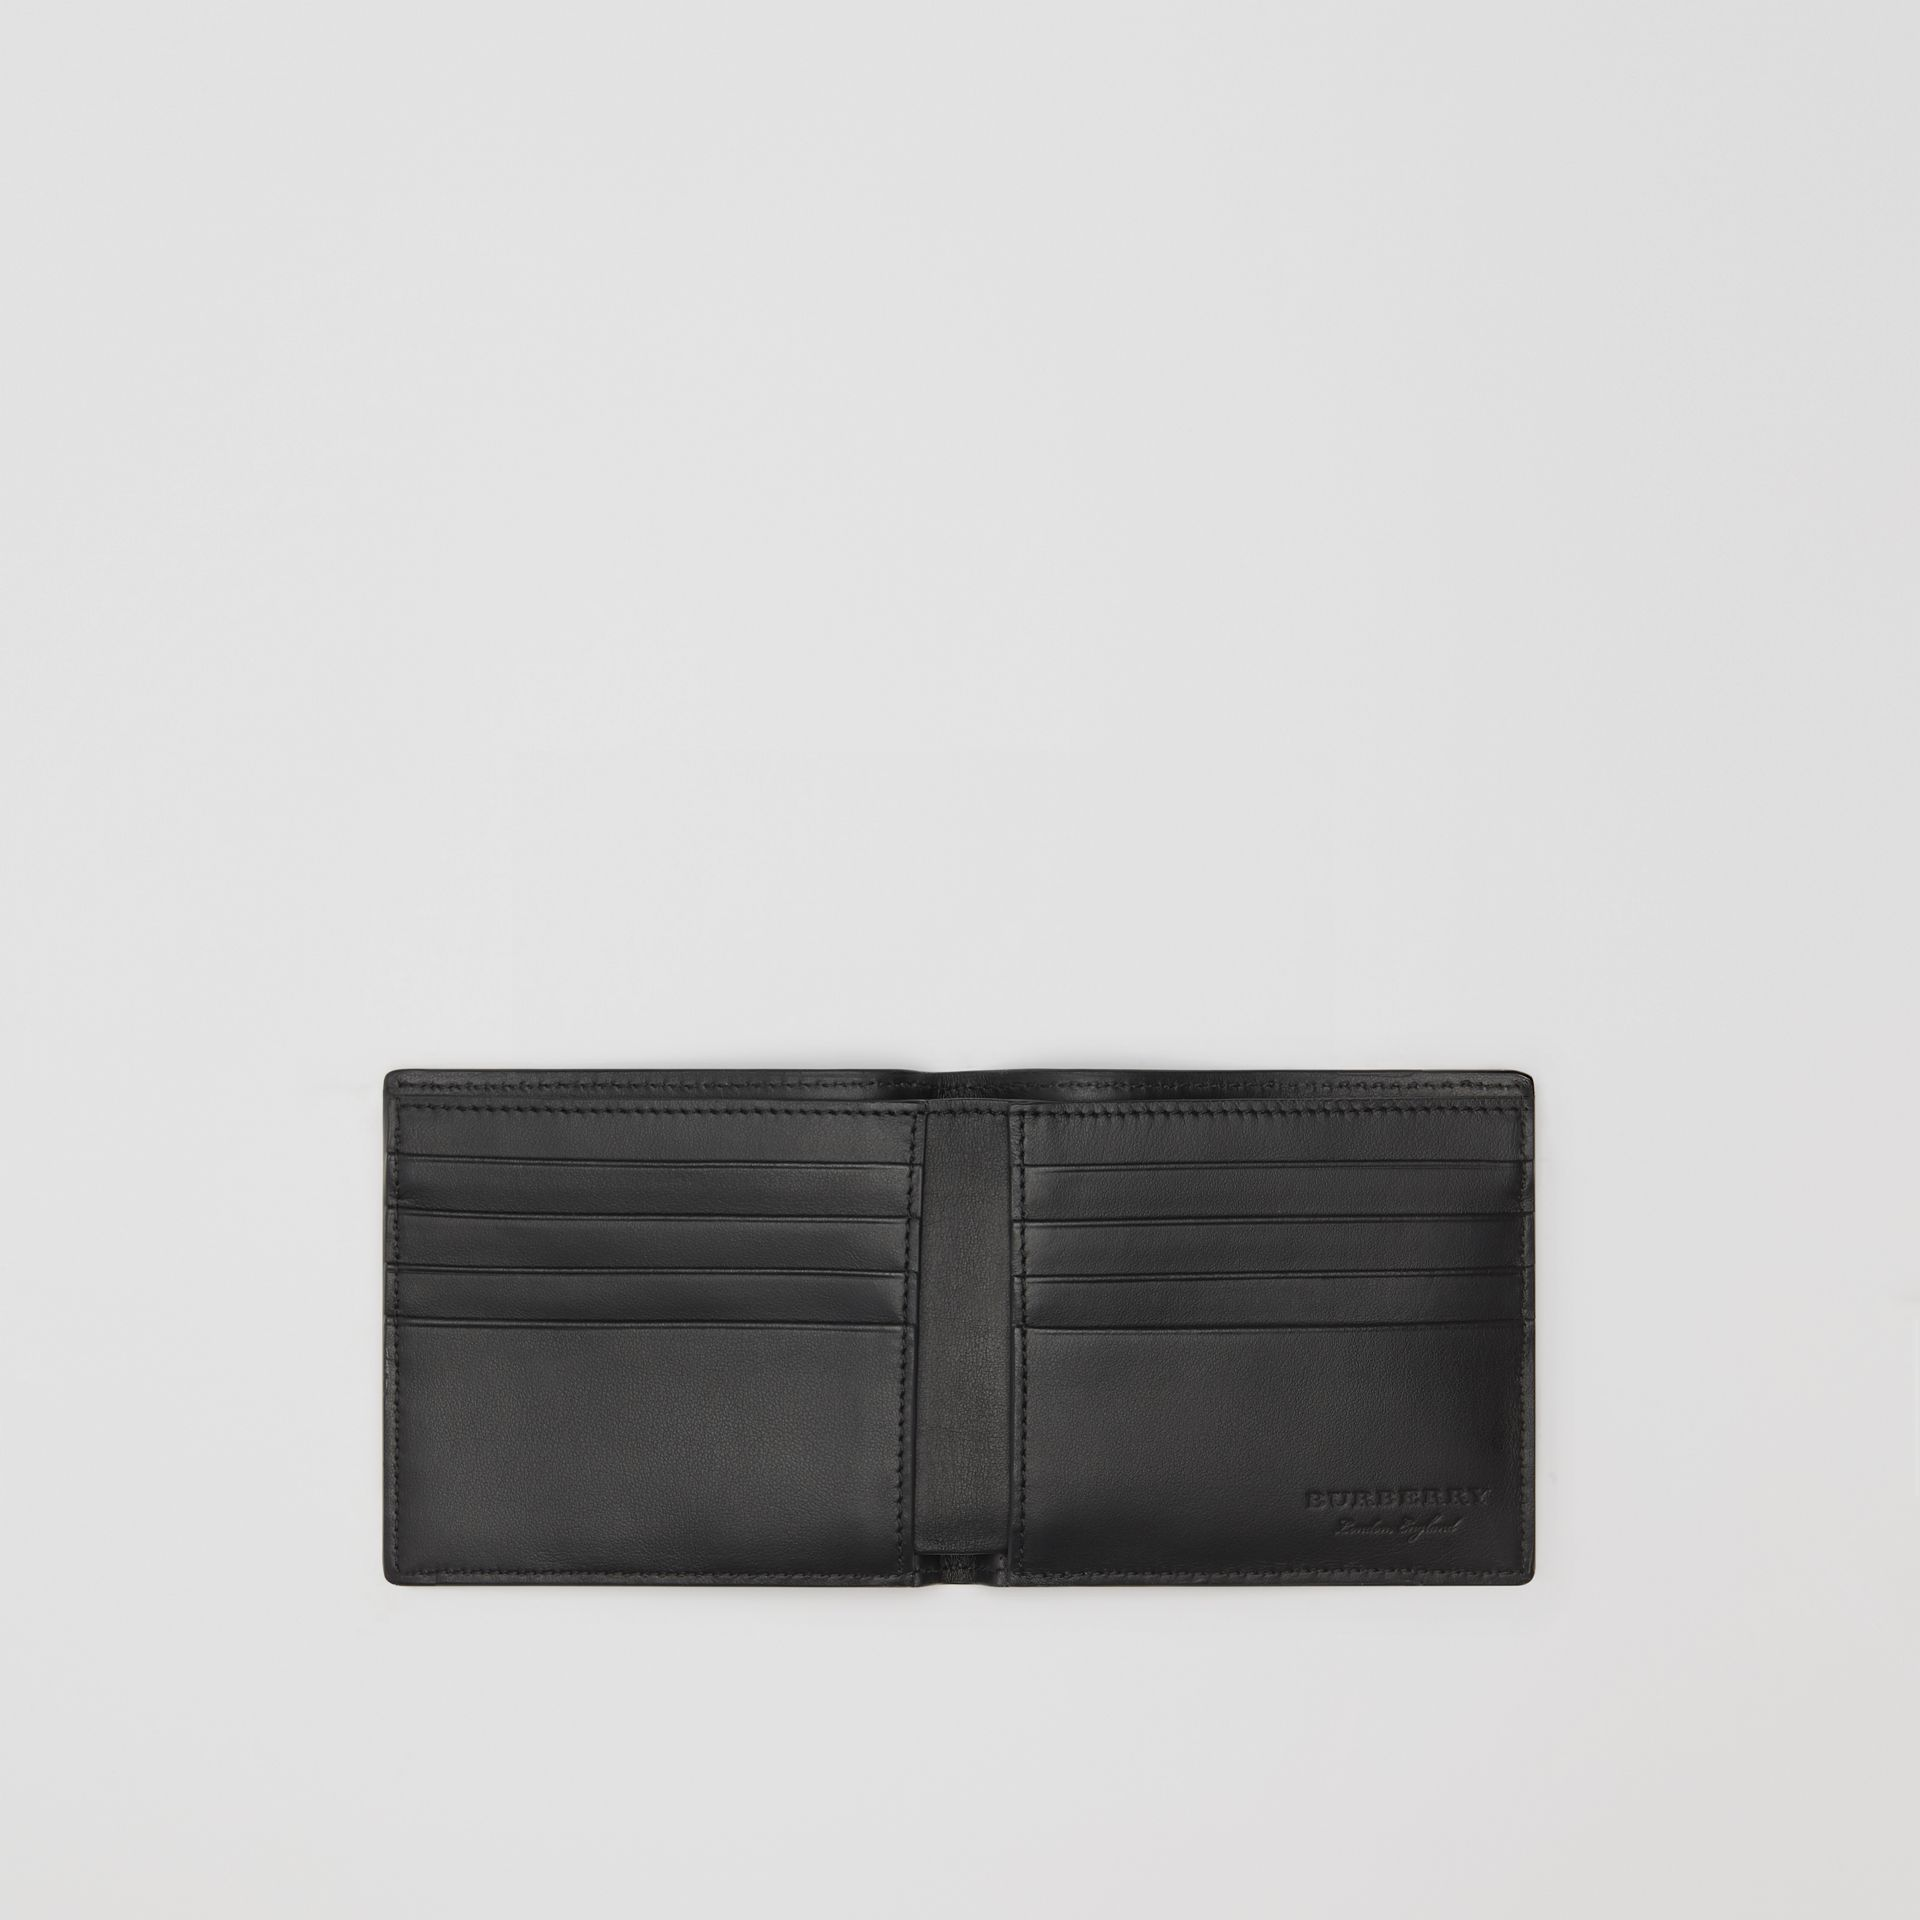 Embossed Leather Bifold Wallet in Black - Men | Burberry Australia - gallery image 3